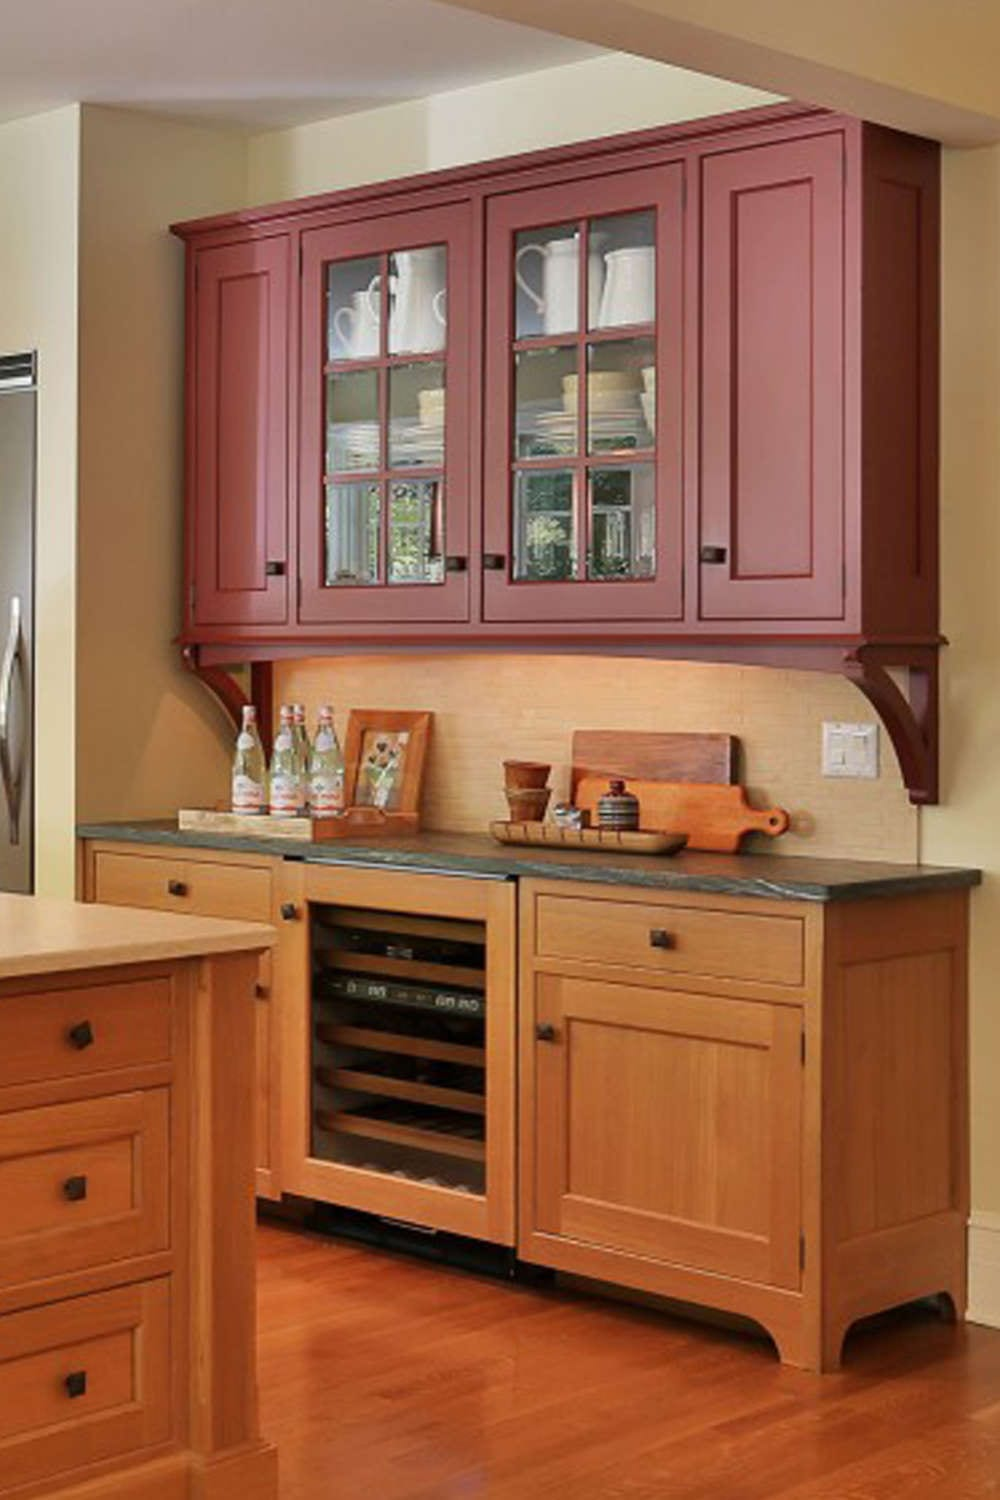 Warm Craftsman style kitchen features a custom shaker style red brink painted hutch by Rutt Handcrafted Cabinetry. The kitchen also incorporates Rutt shaker style cabinets in a mix of rift cut white oak and custom red brick paint finish, square oil rubbed bronze hardware and a mix of green soapstone and warm toned granite countertops. Design by Randy O'Kane, CKD, of Bilotta Kitchens.